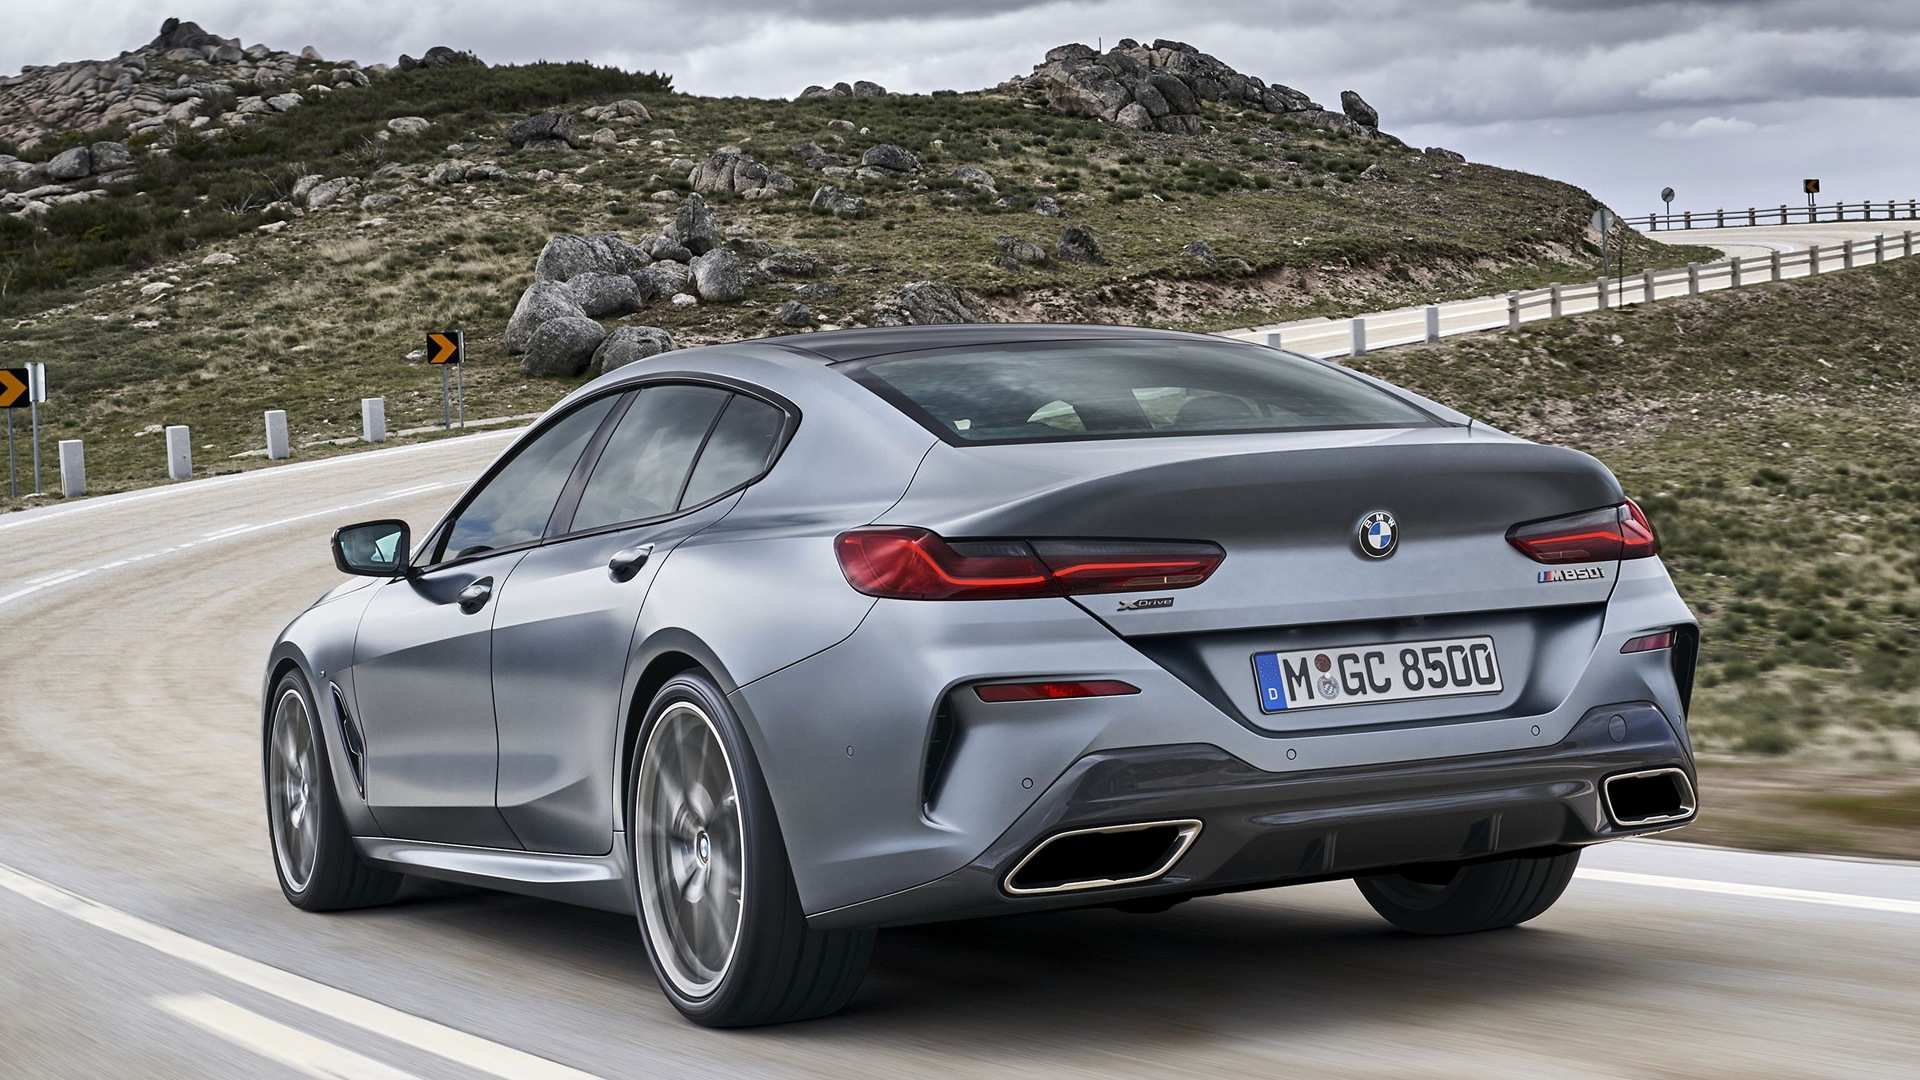 41 New 2020 Bmw 8 Series Price Exterior And Interior